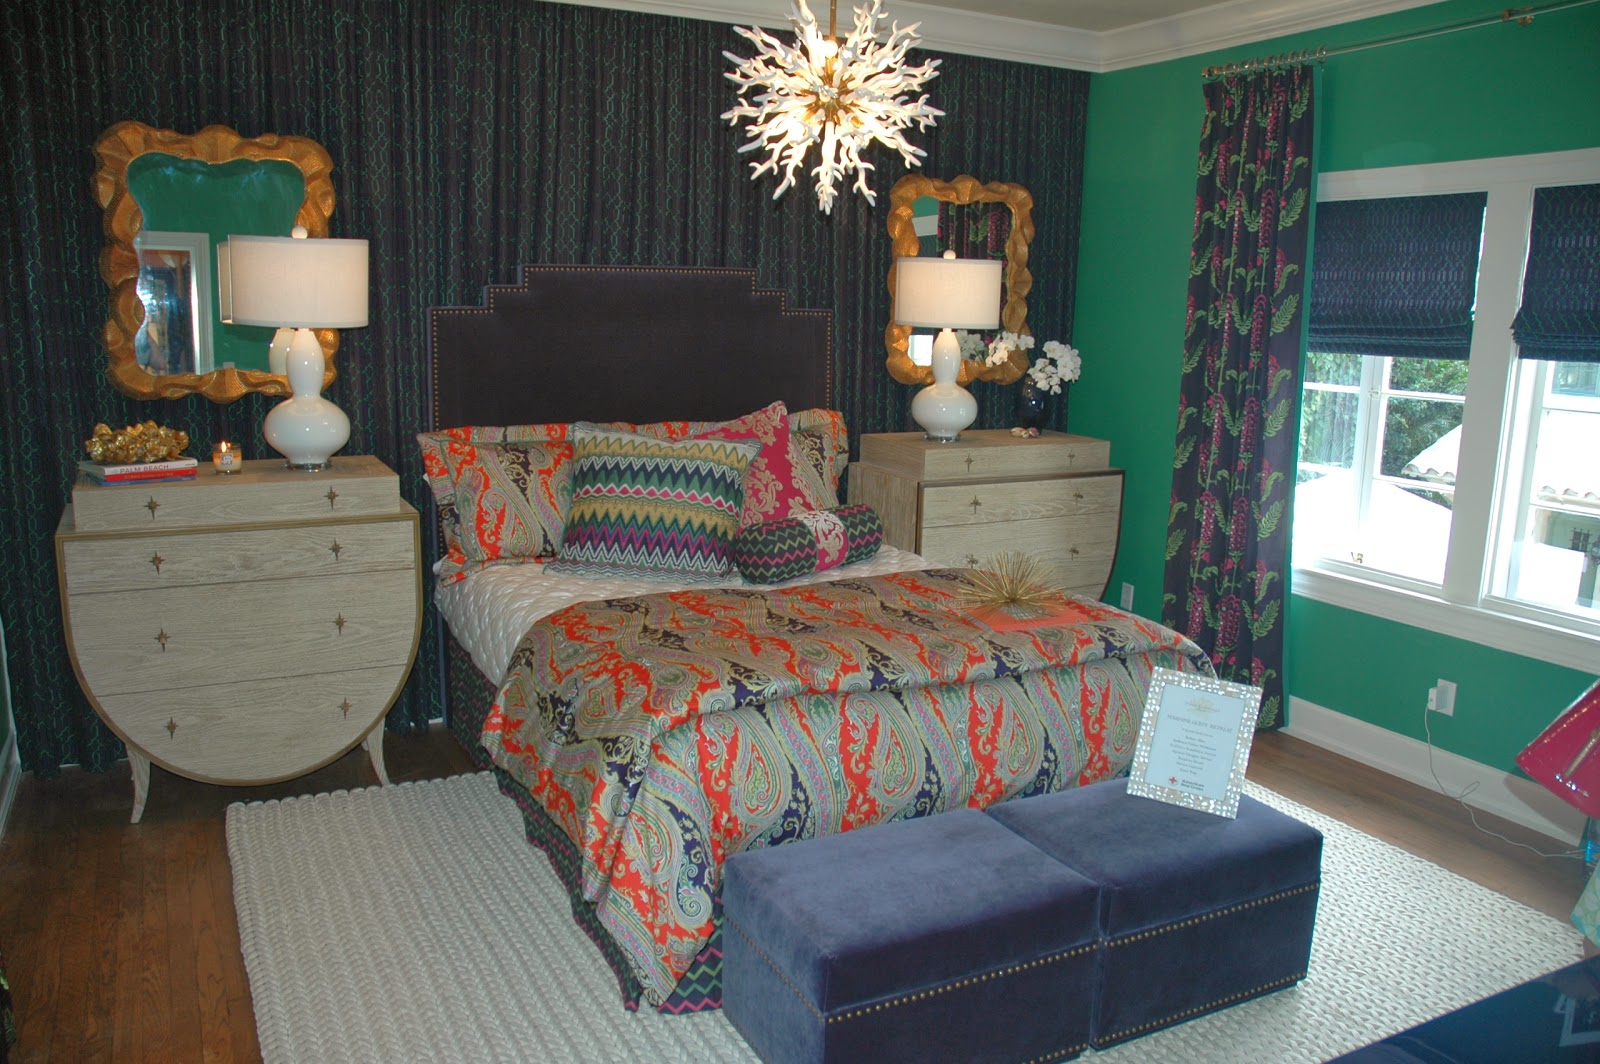 Lovely Inspiration for the guest retreat by Piper Gonzales Designs came from the brightly colored fabrics of Robert Allen us new Color Library Collection